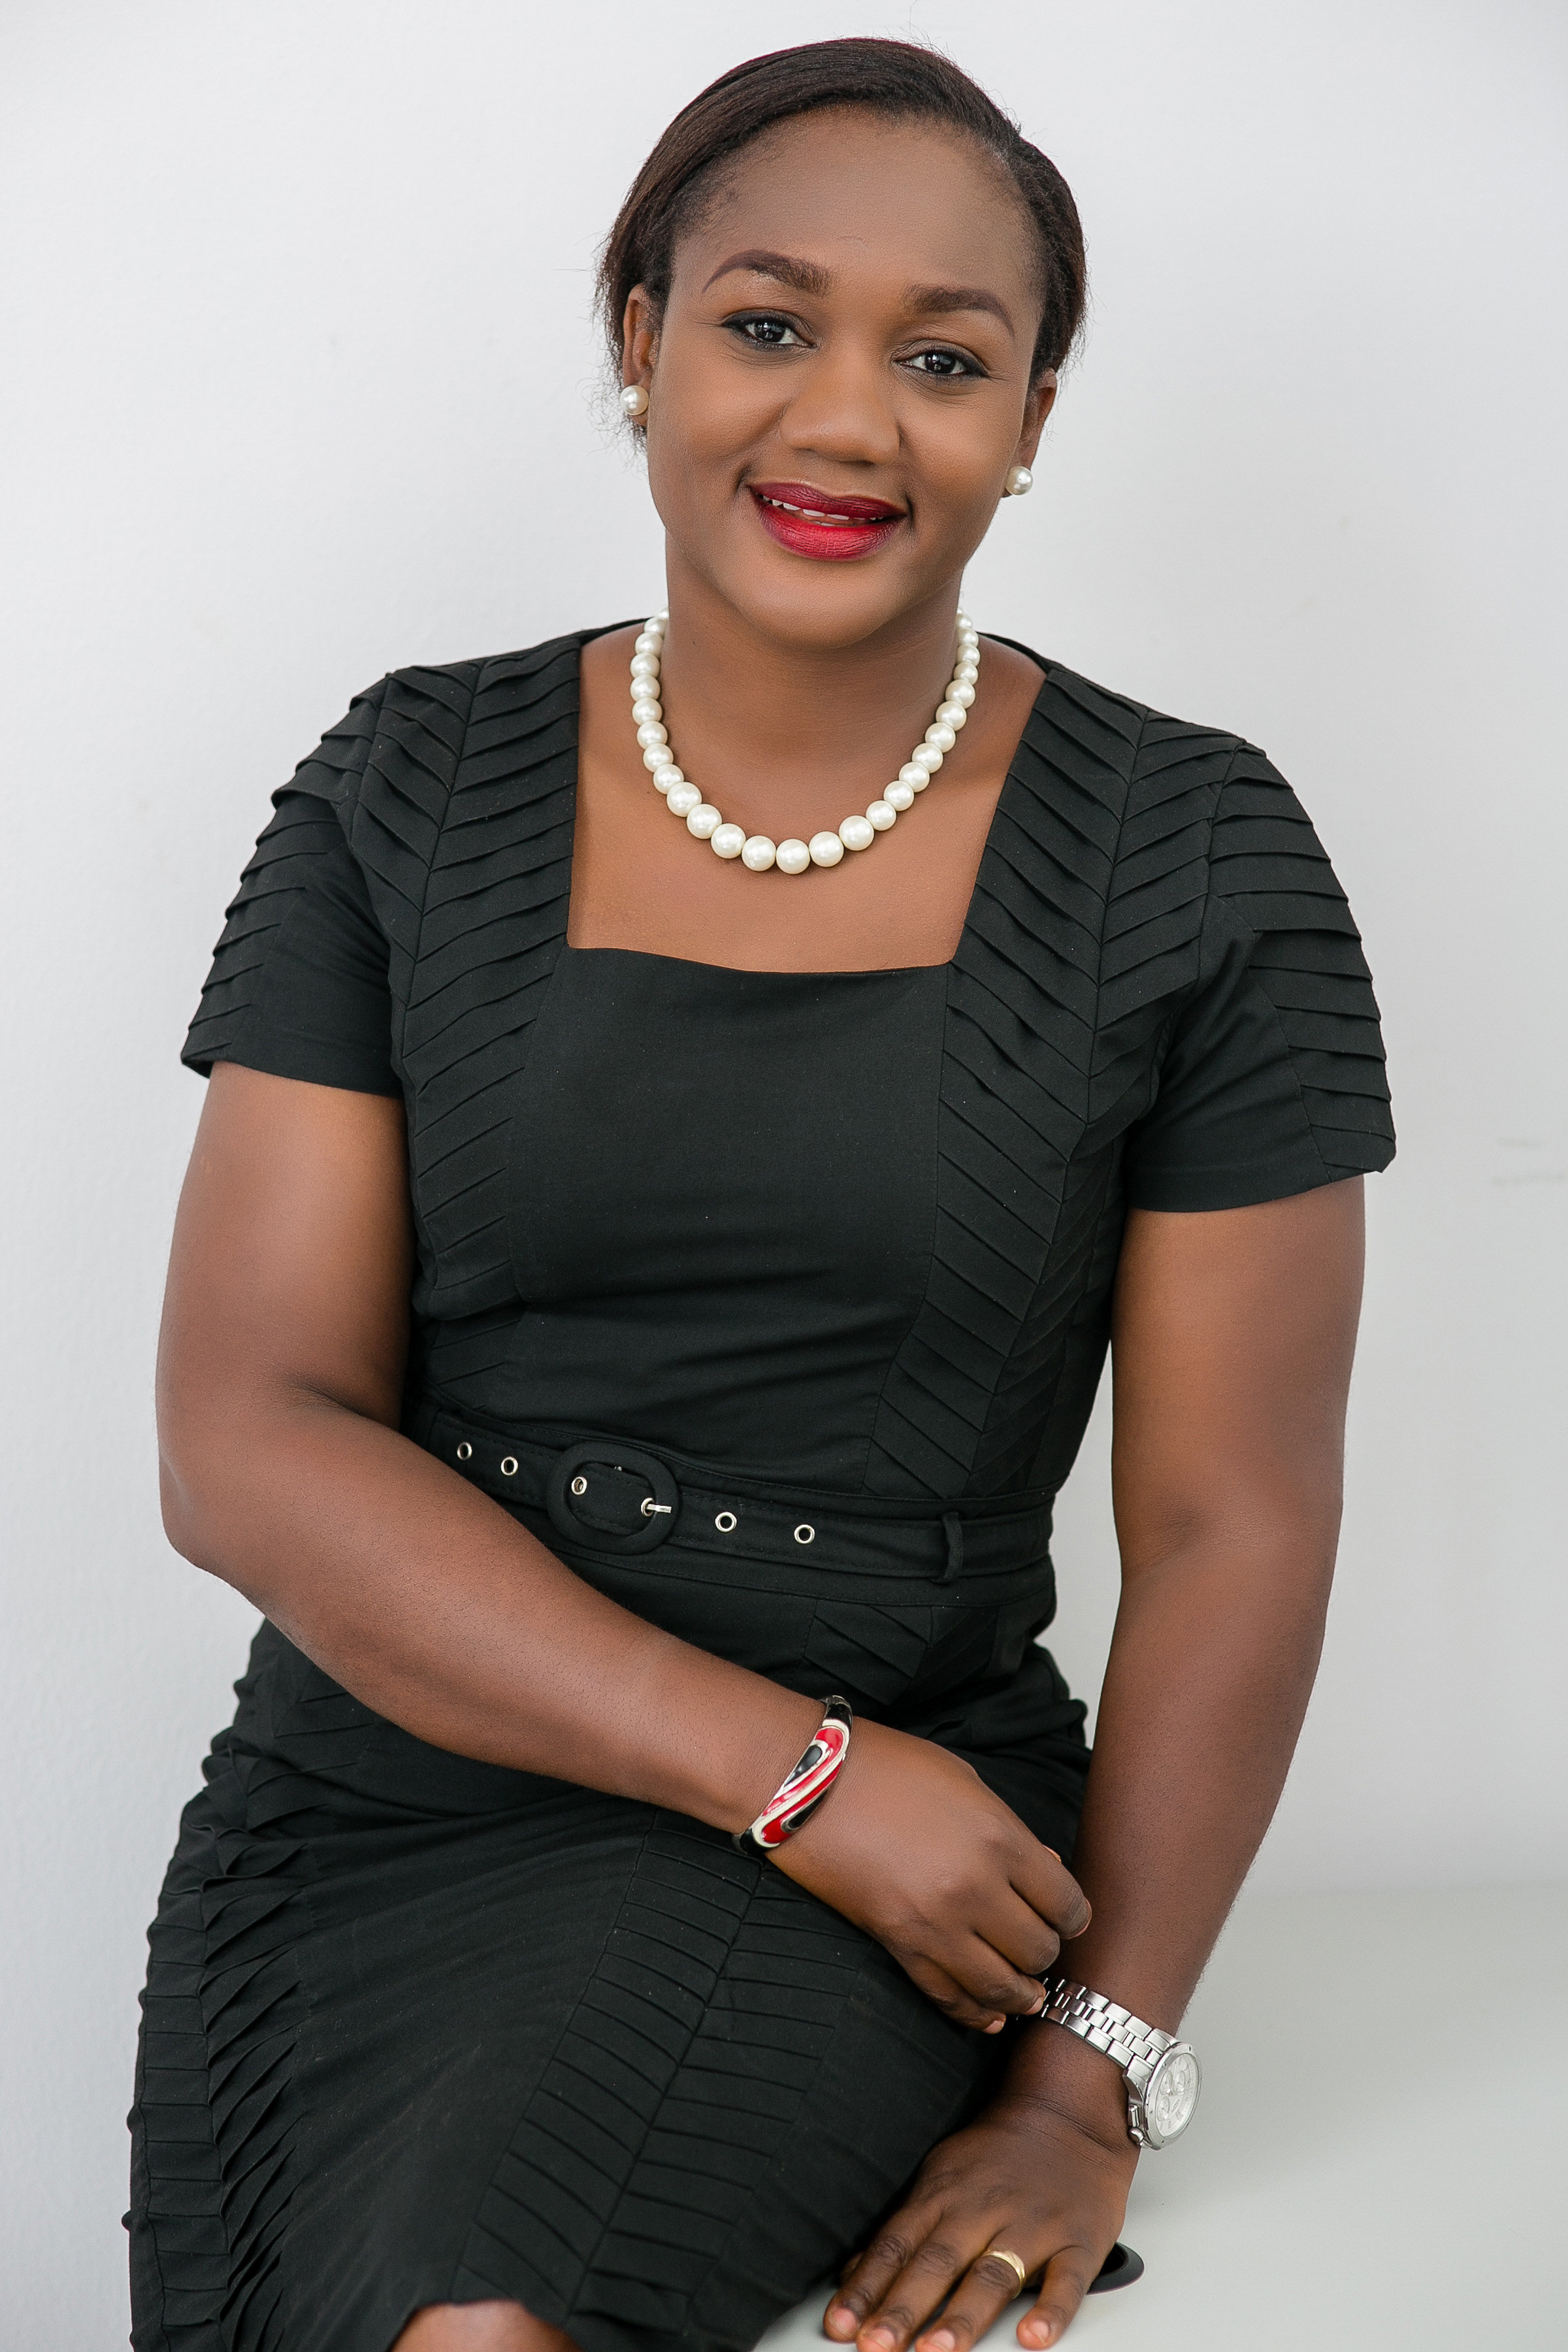 Enterprise Stories - Chioma Ukonu